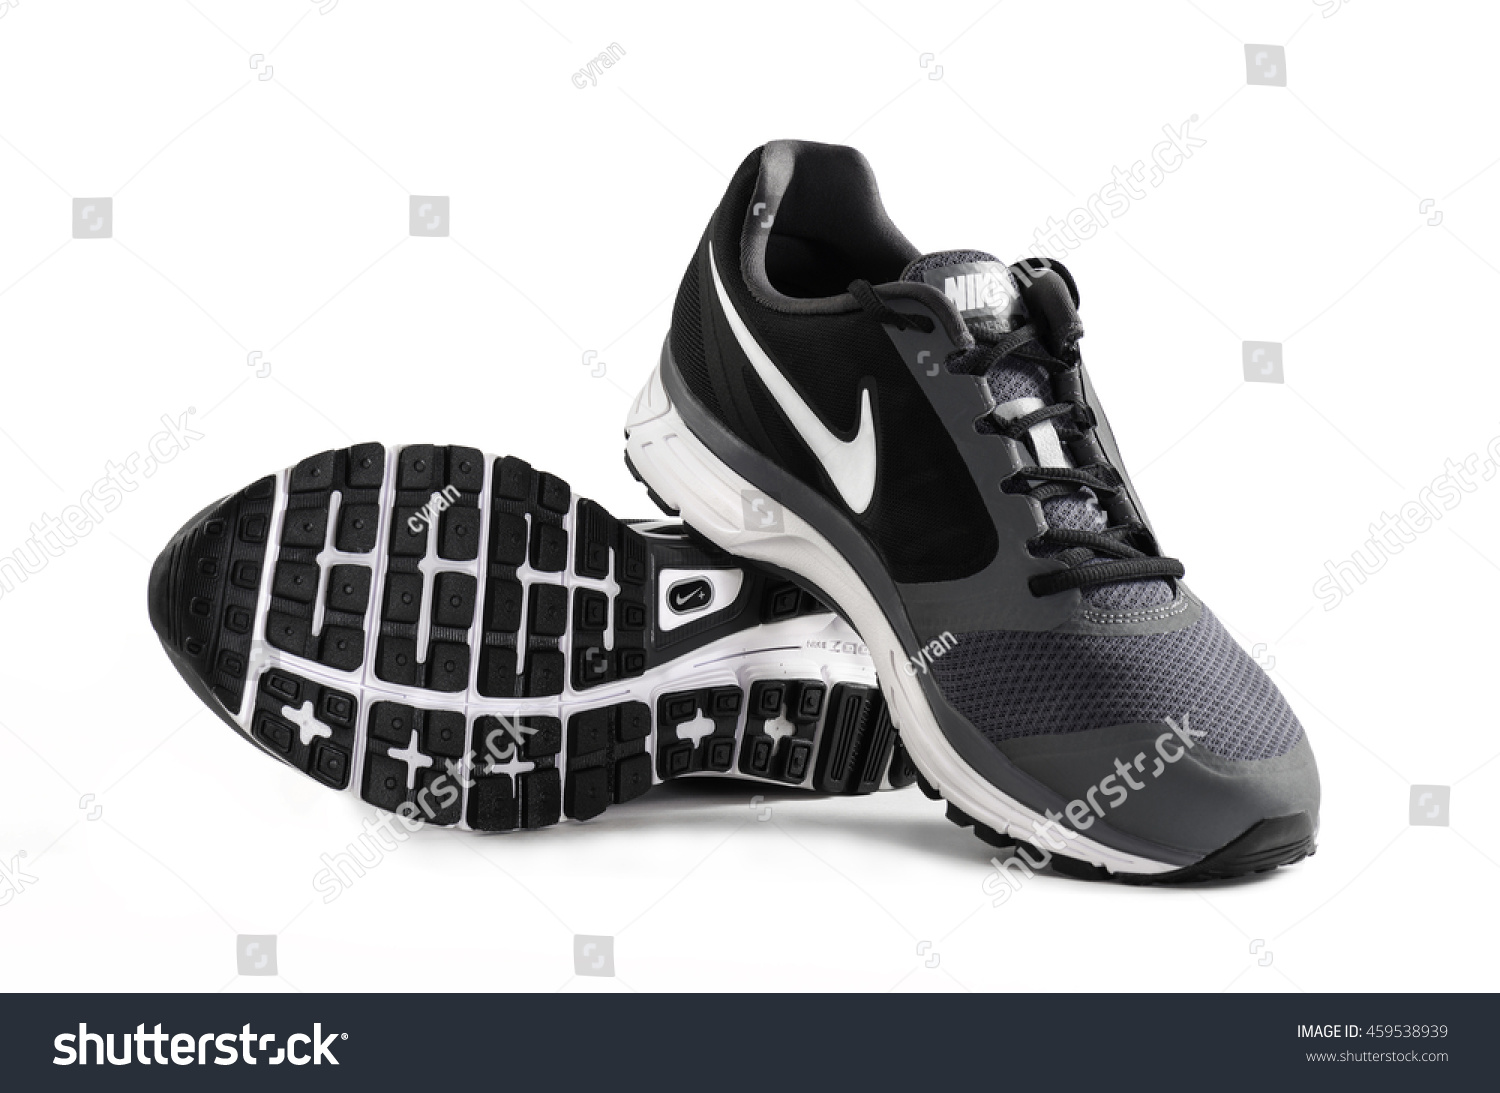 2d4f5f99 POZNAN, POLAND- July 28, 2016: NIKE VOMERO 8 men's running shoes isolated